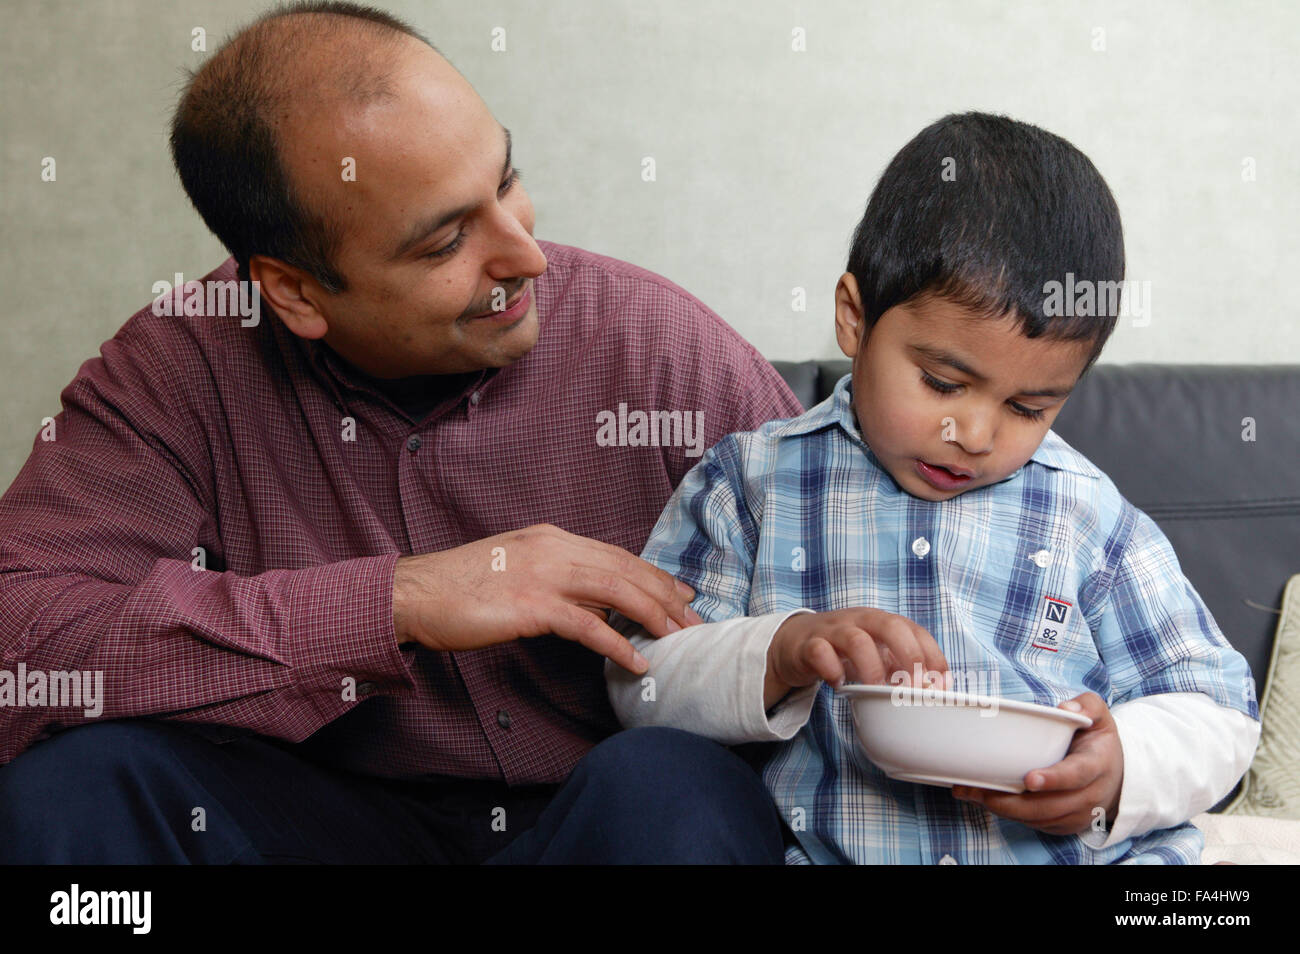 Single parent sitting with his young son while he eats his meal, - Stock Image